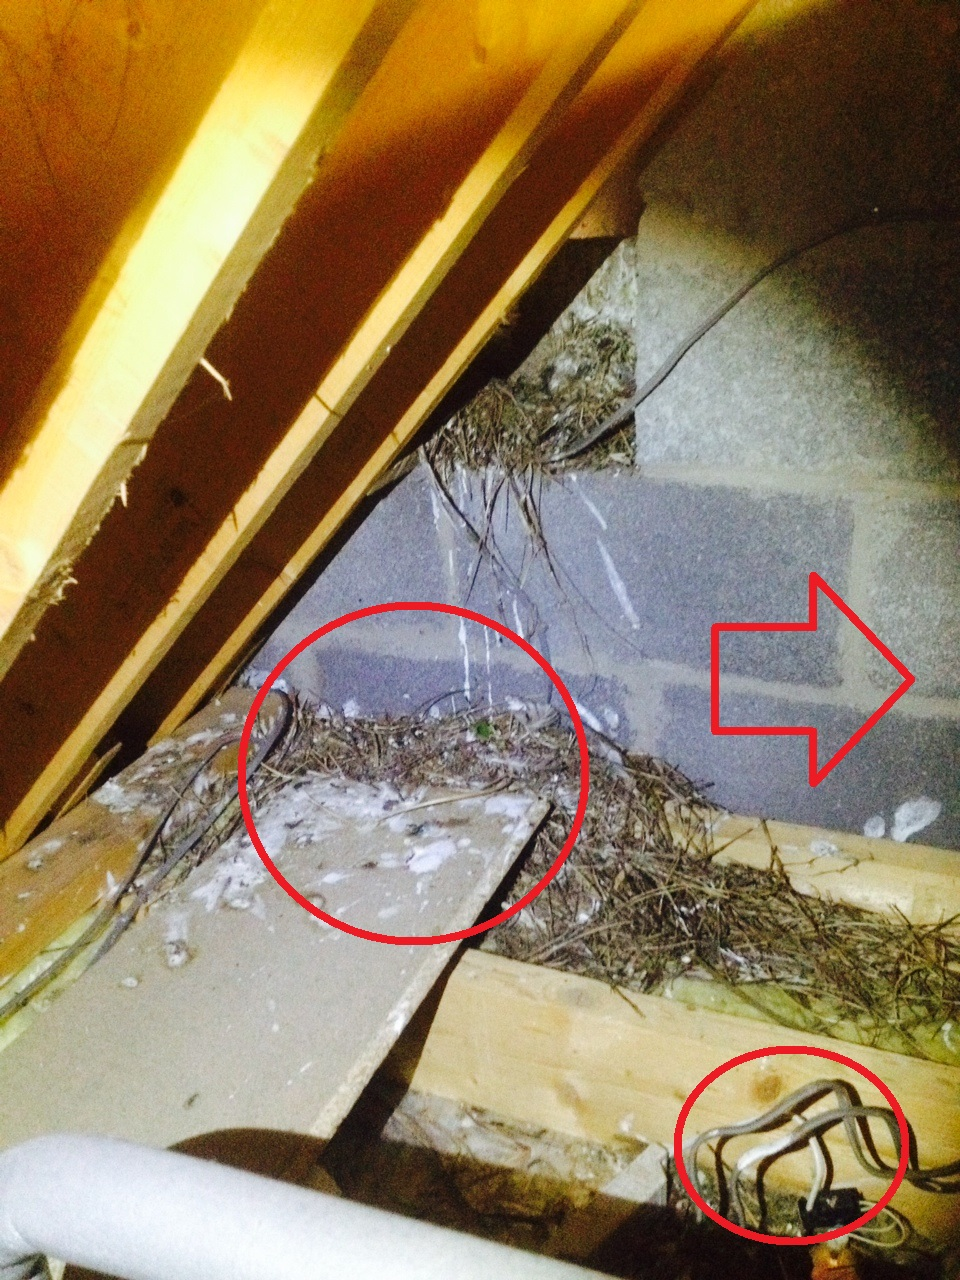 Dangers Of Nesting Birds Wildlife Management Discuss About Home Wiring Hazards And Electrical In Your There Is A Strong Risk That The Material To Blood Feeding Parasites Other Insects Who Can Easily Make Their Way Along Wall Into